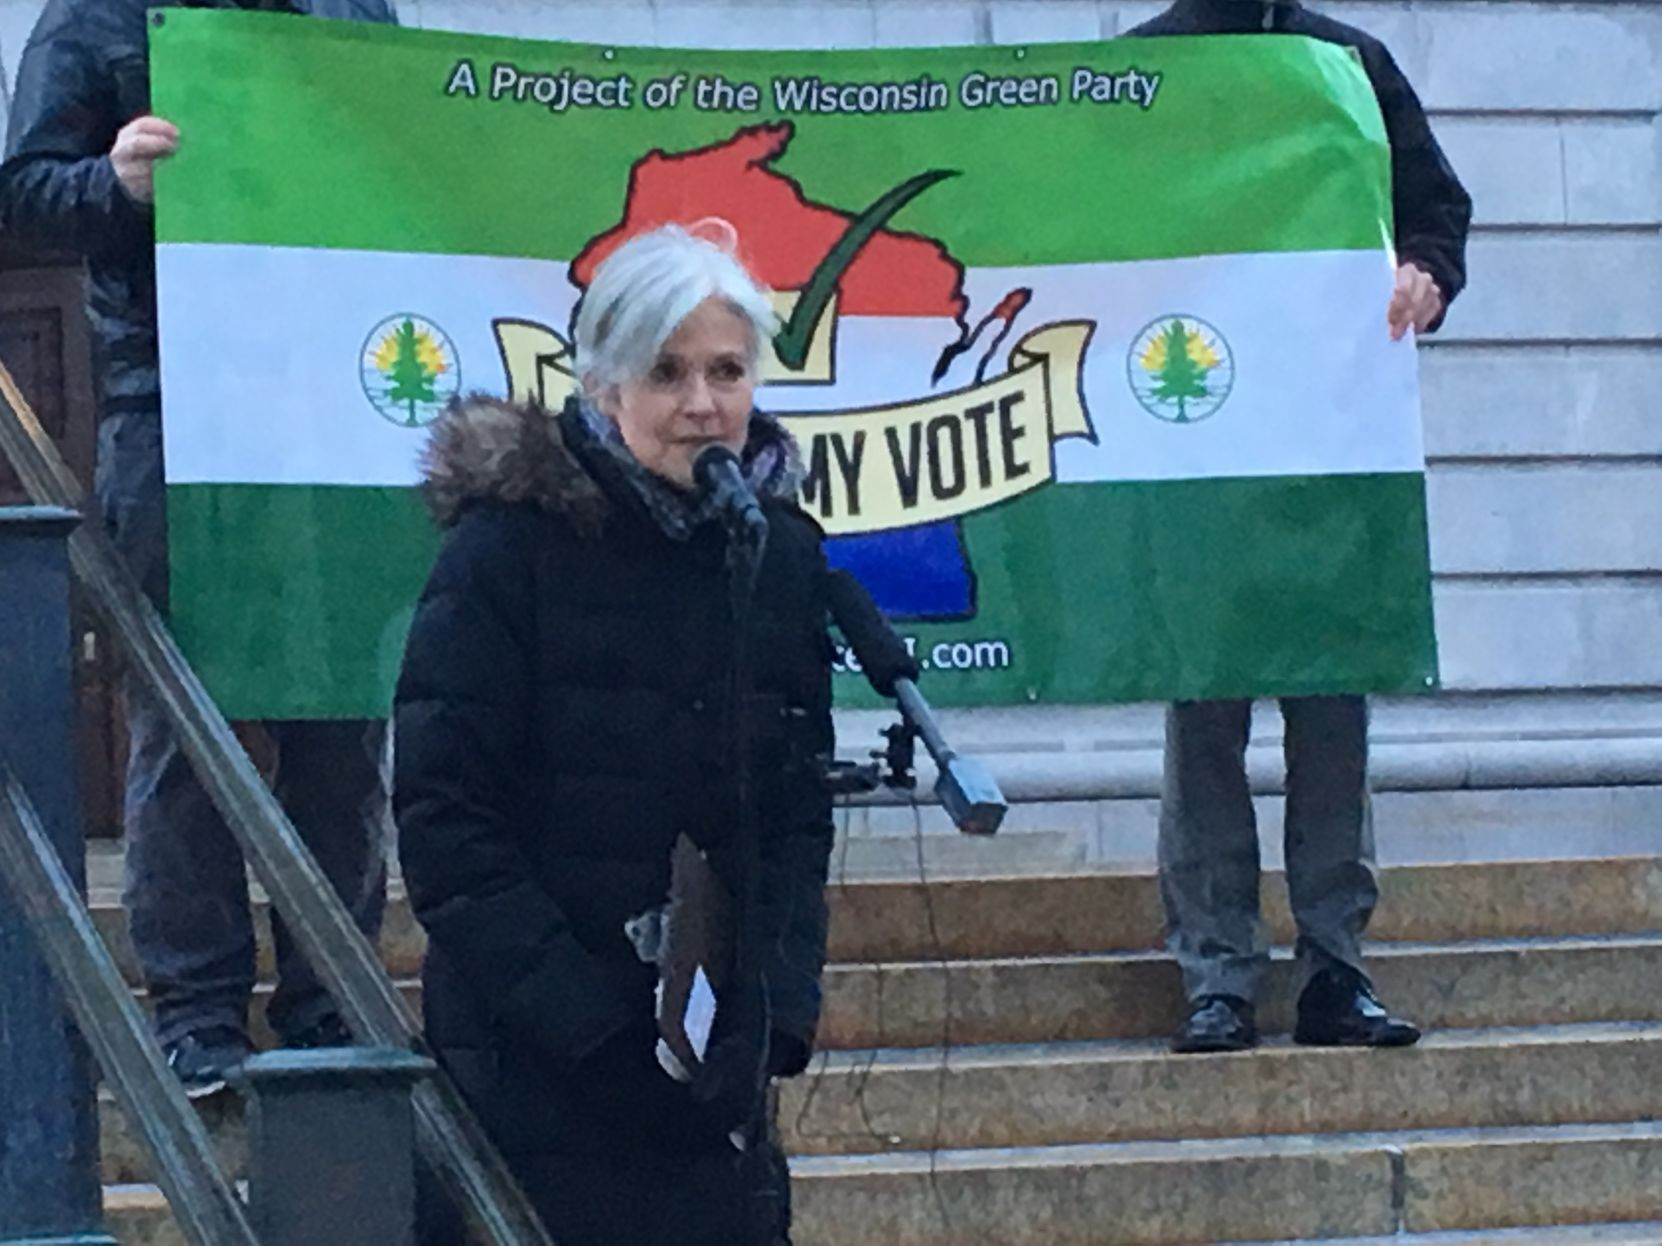 Jill Stein says $1.5 million recount refund could fund new advocacy group